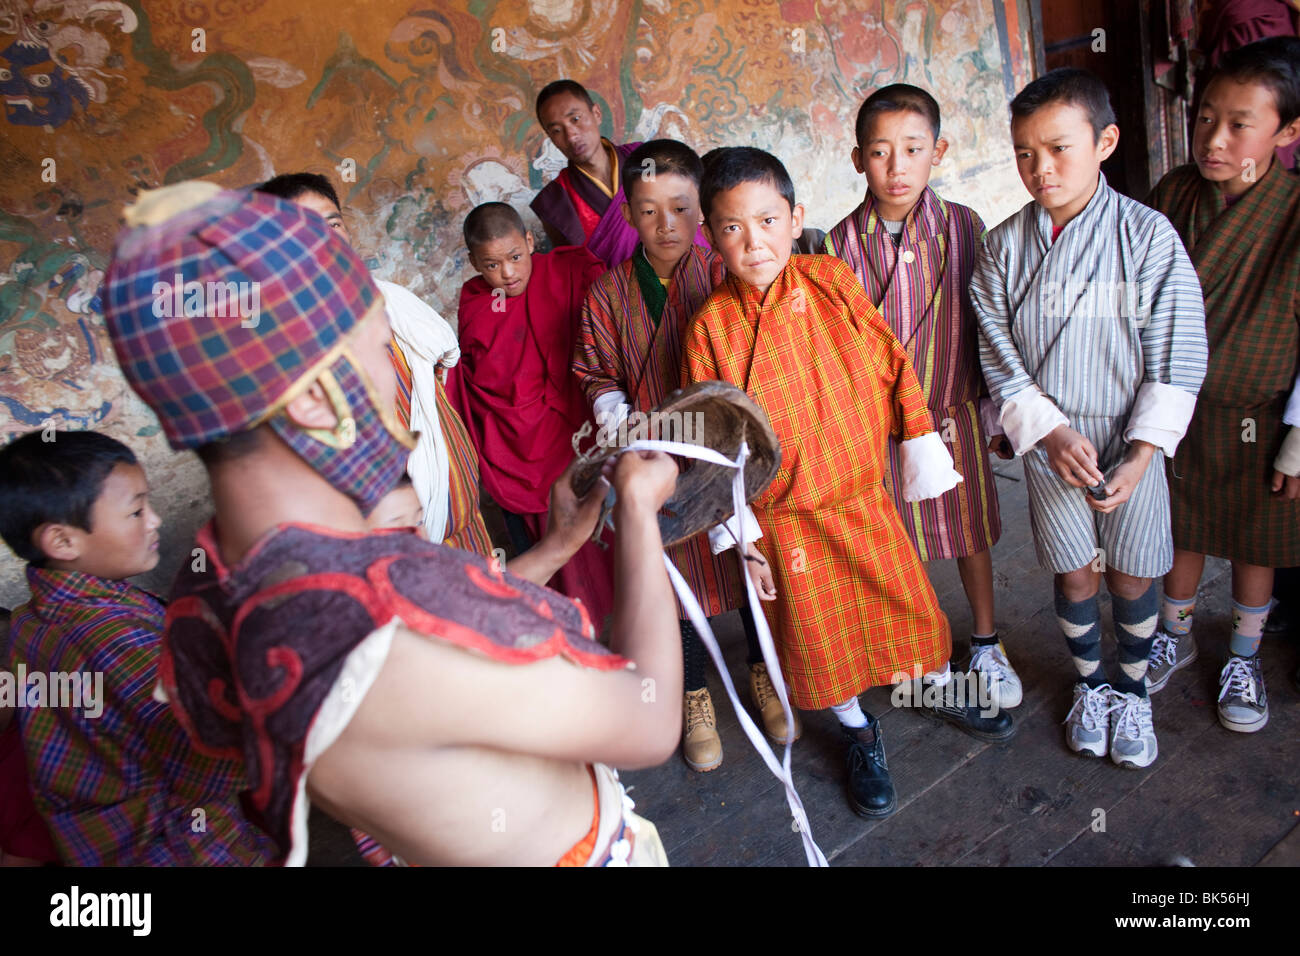 Buddhist monks celebrate at a traditional festival or Tsechu in Bhutan - Stock Image